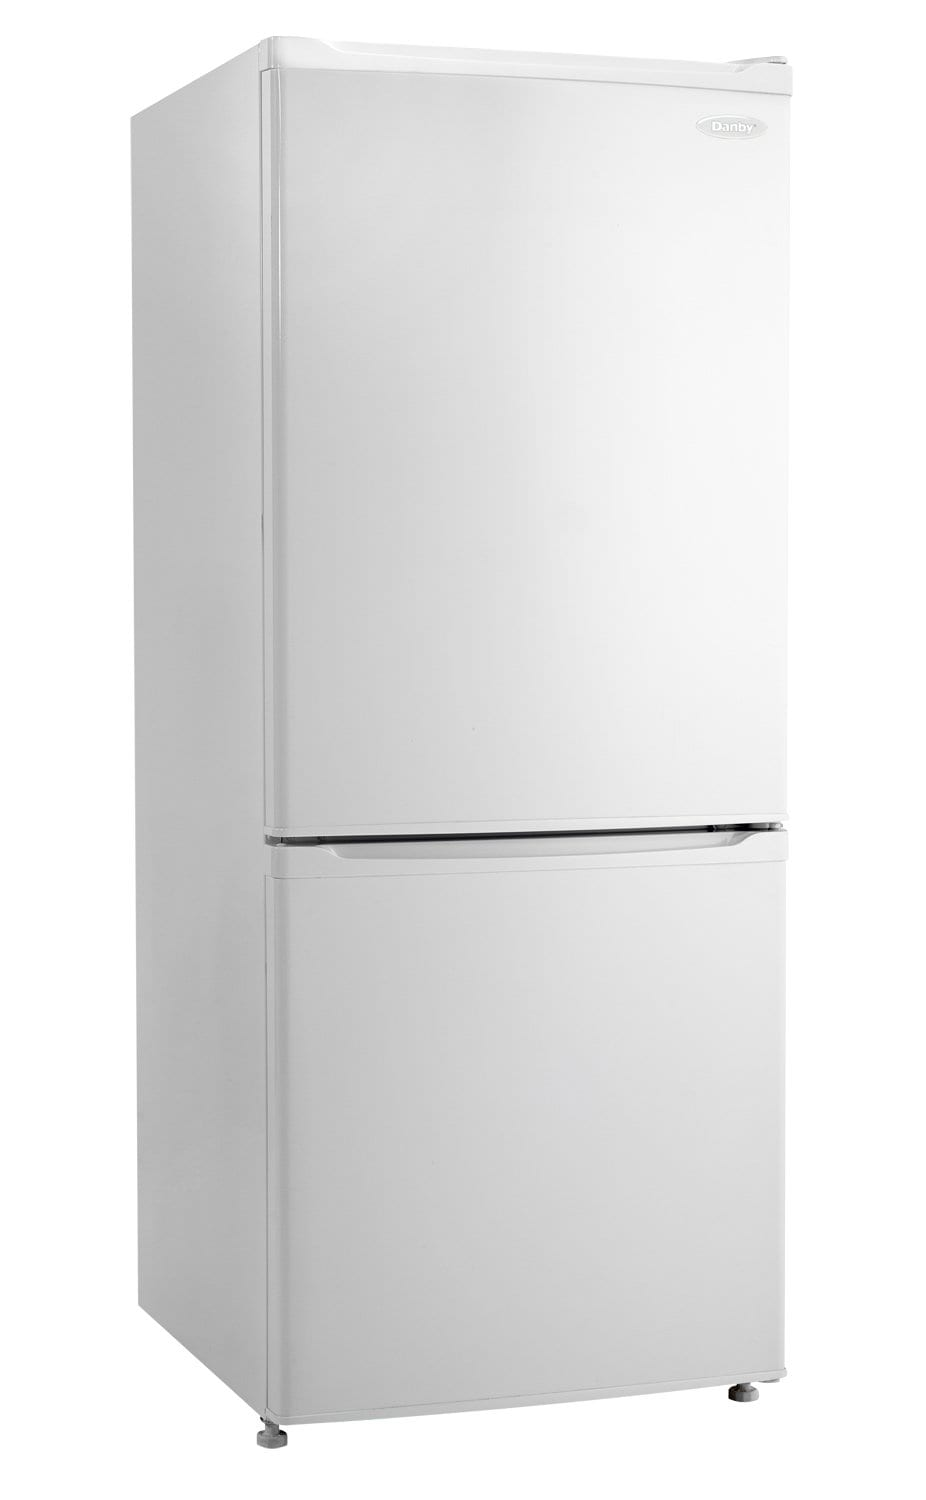 Danby 9.2 Cu. Ft. Bottom Mount Freezer